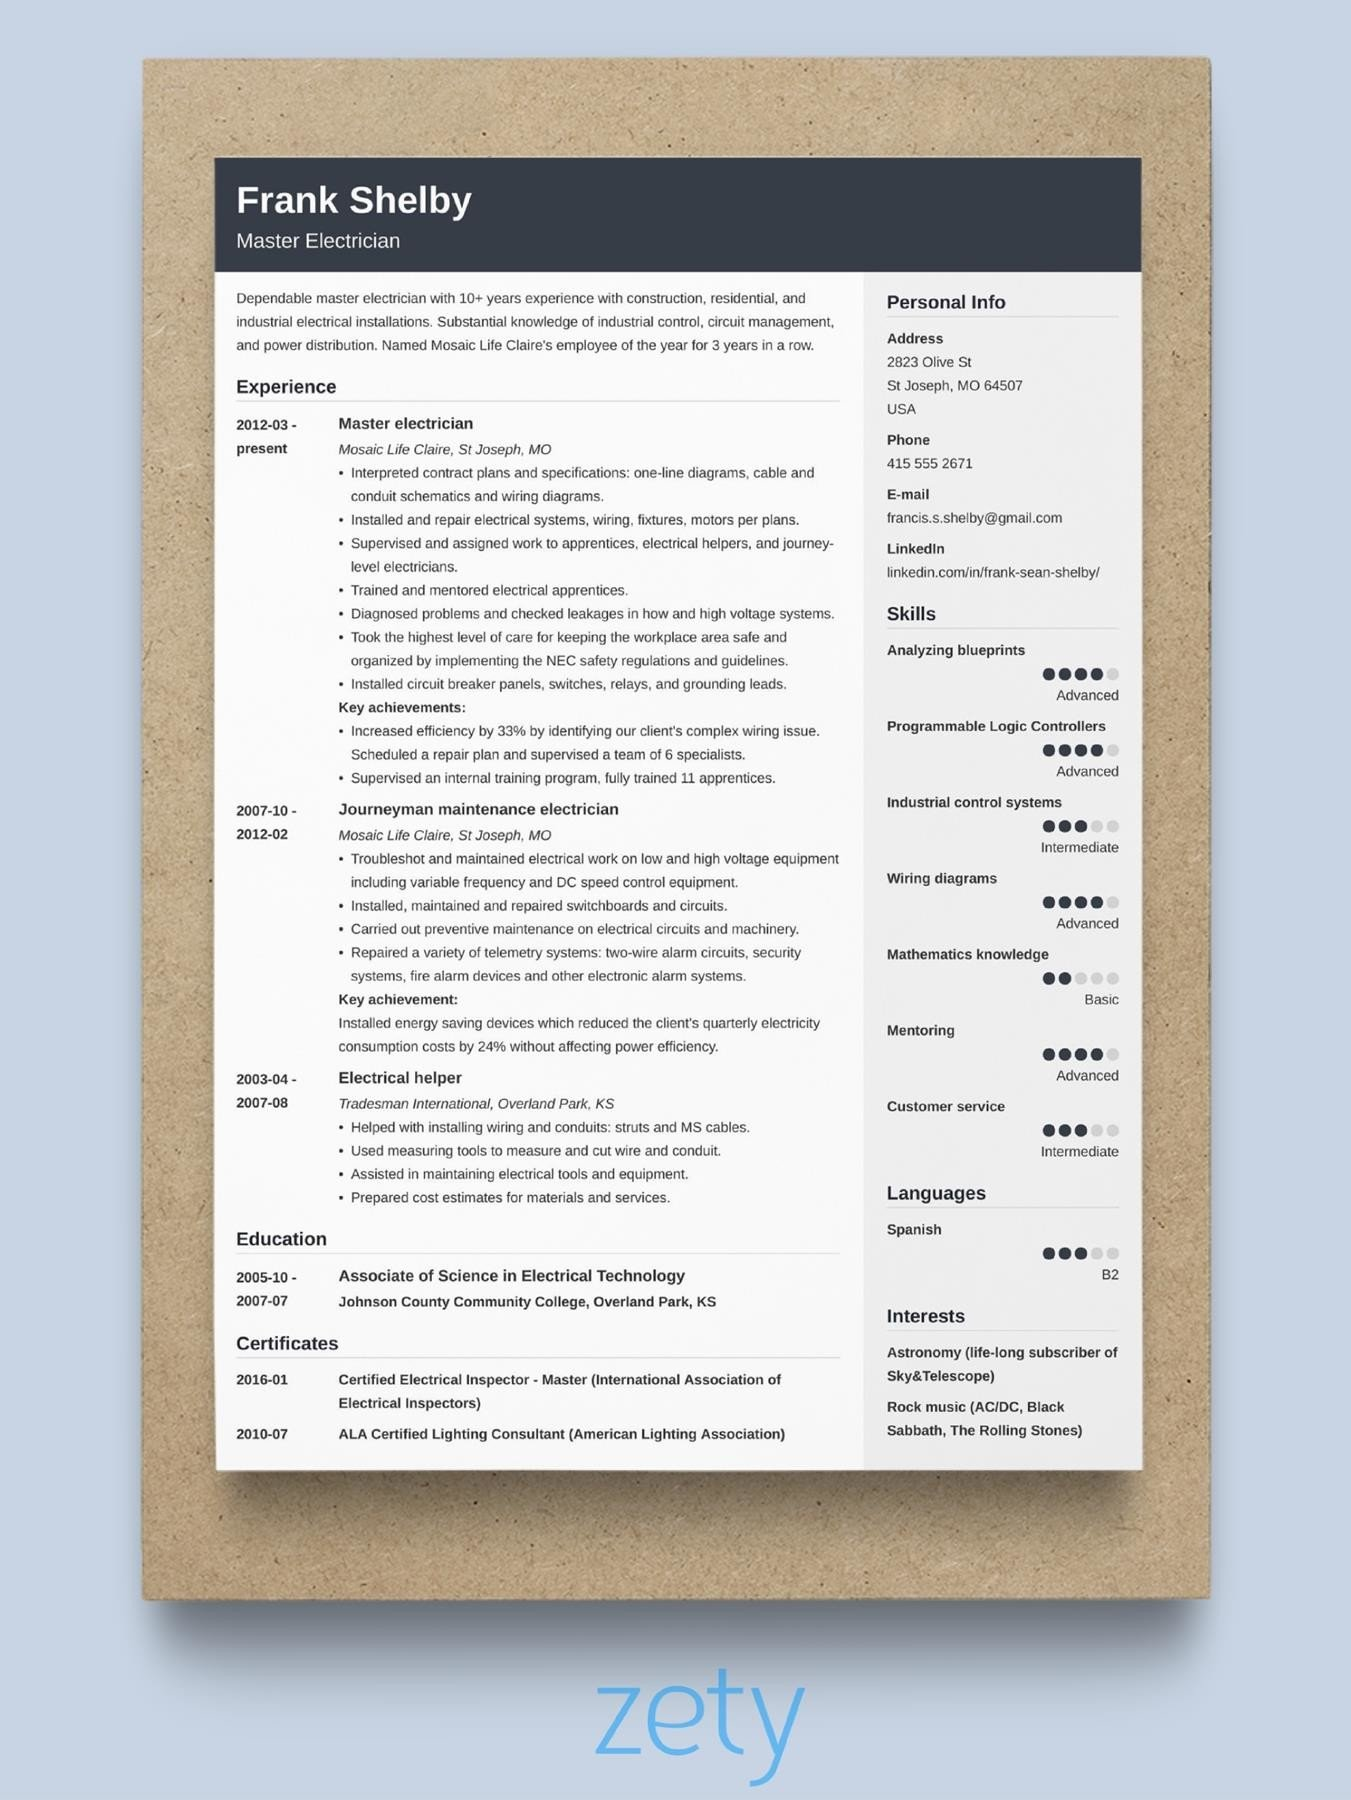 Resume Styles Best Suited For Your Needs 20 Tips